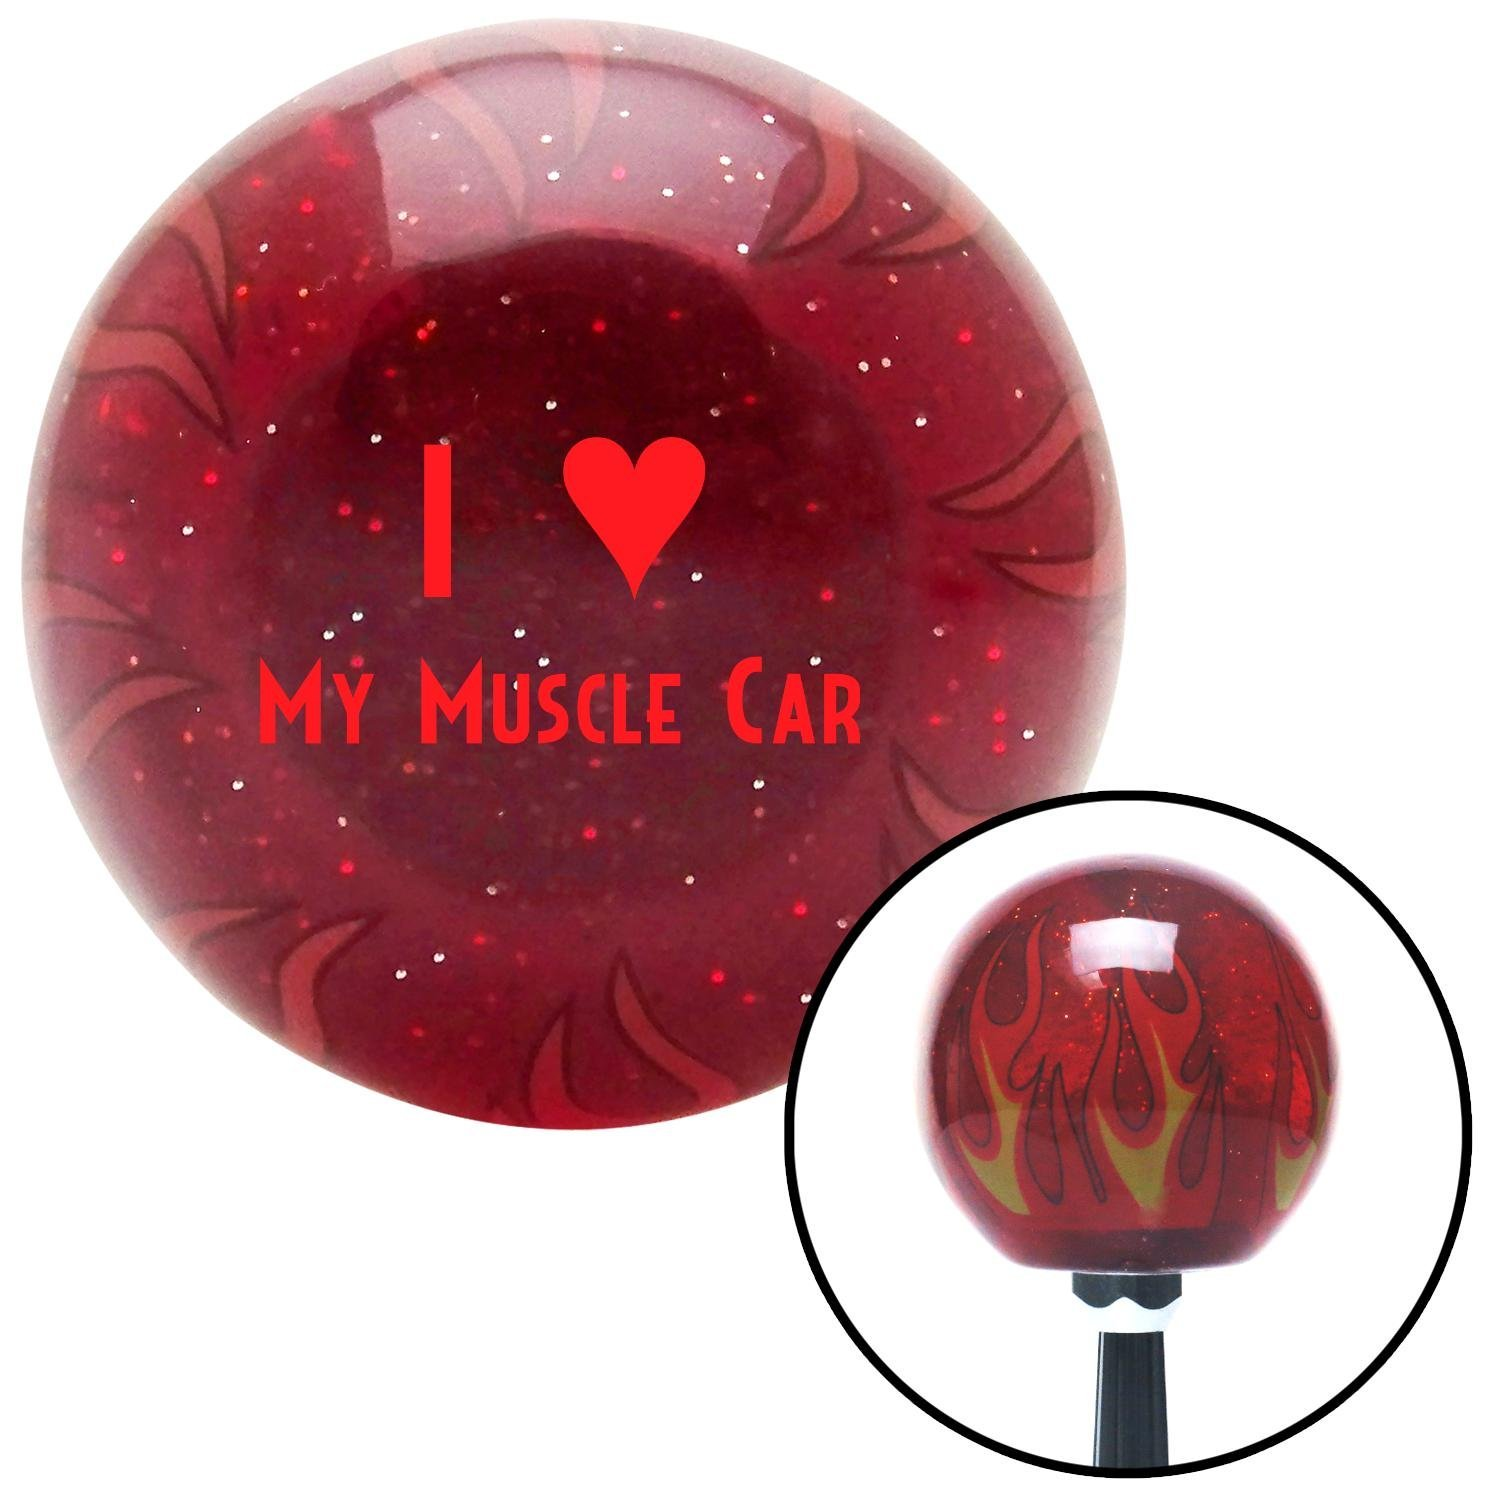 American Shifter 237405 Red Flame Metal Flake Shift Knob with M16 x 1.5 Insert Red I 3 My Muscle CAR